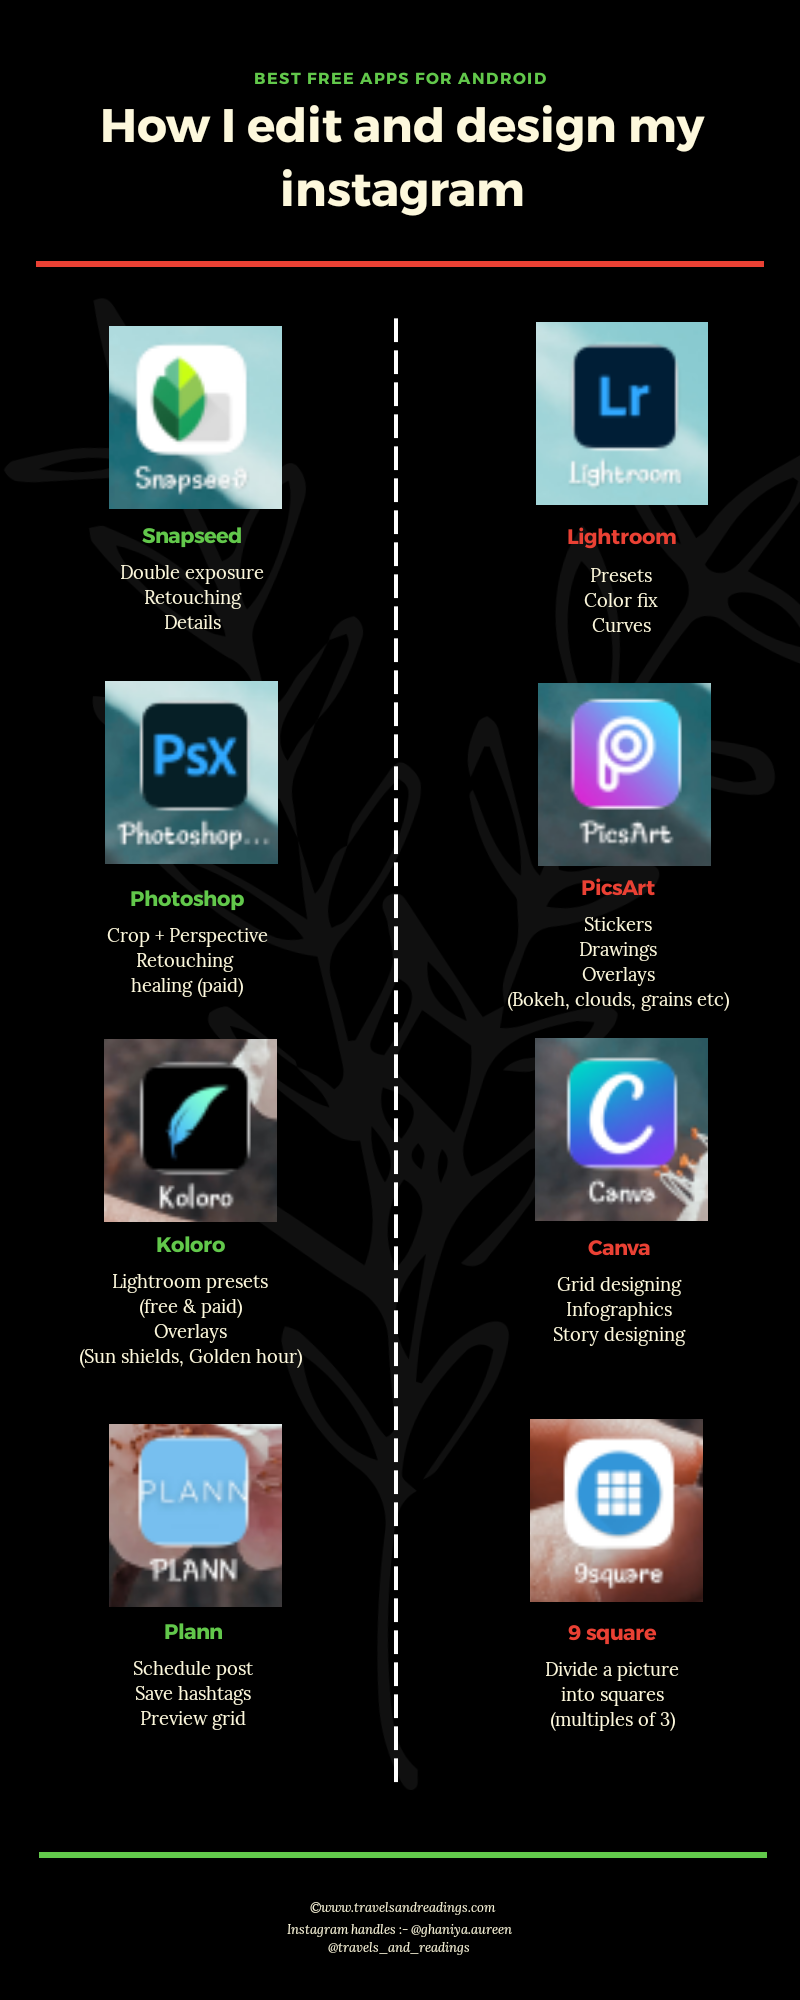 This is an infographic with details on best android applications to edit, plan and schedule your Instagram posts to create an engaging and creative feed.